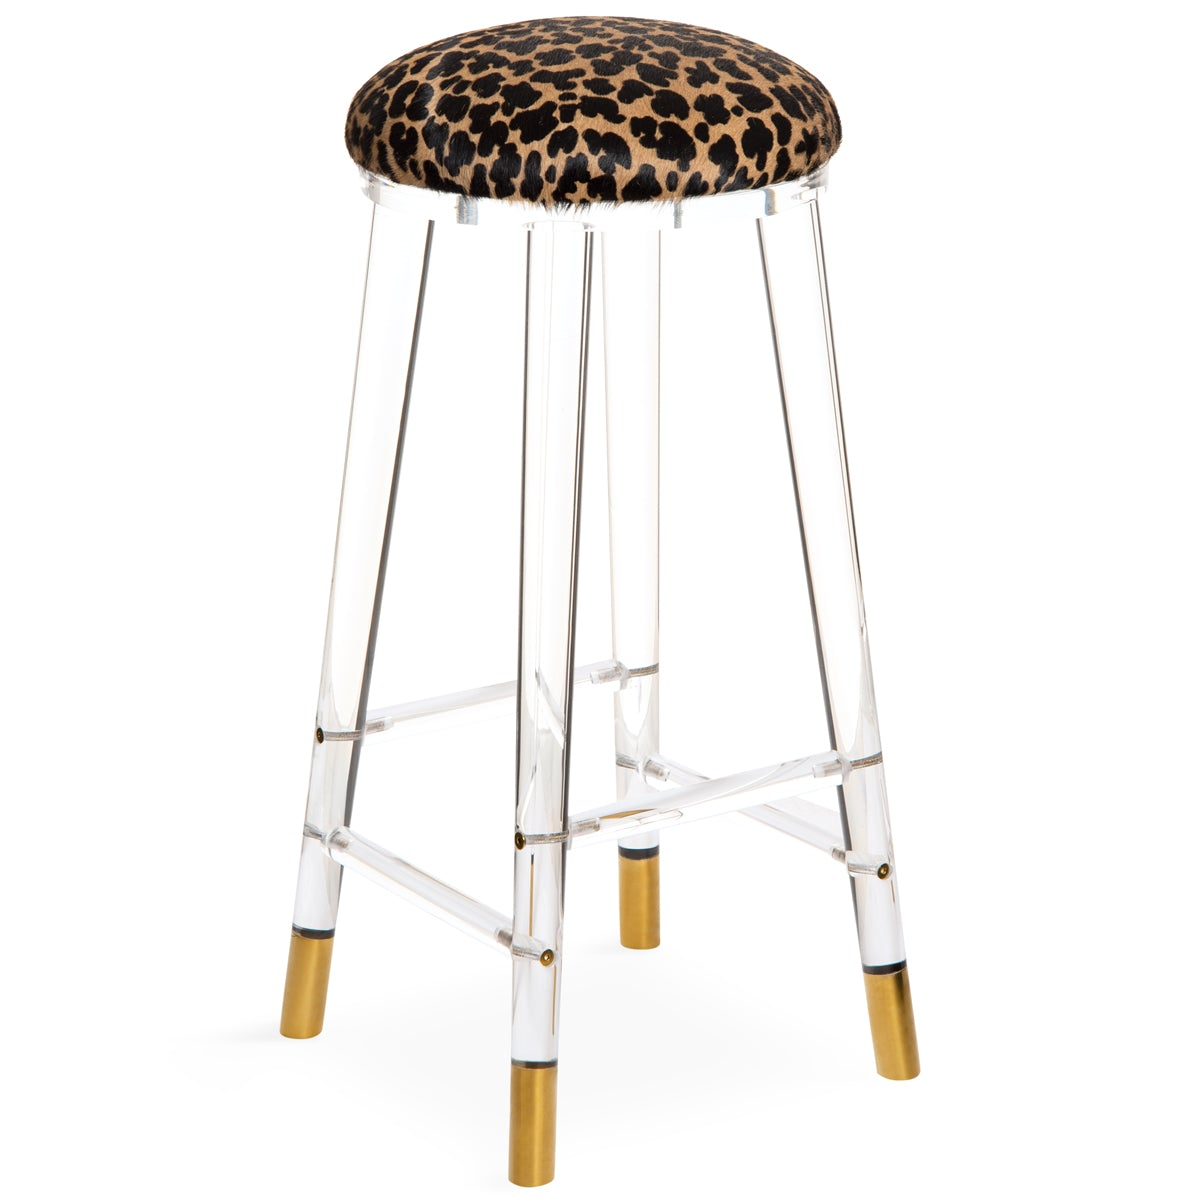 Helsinki Bar Stool in Cowhide - ModShop1.com